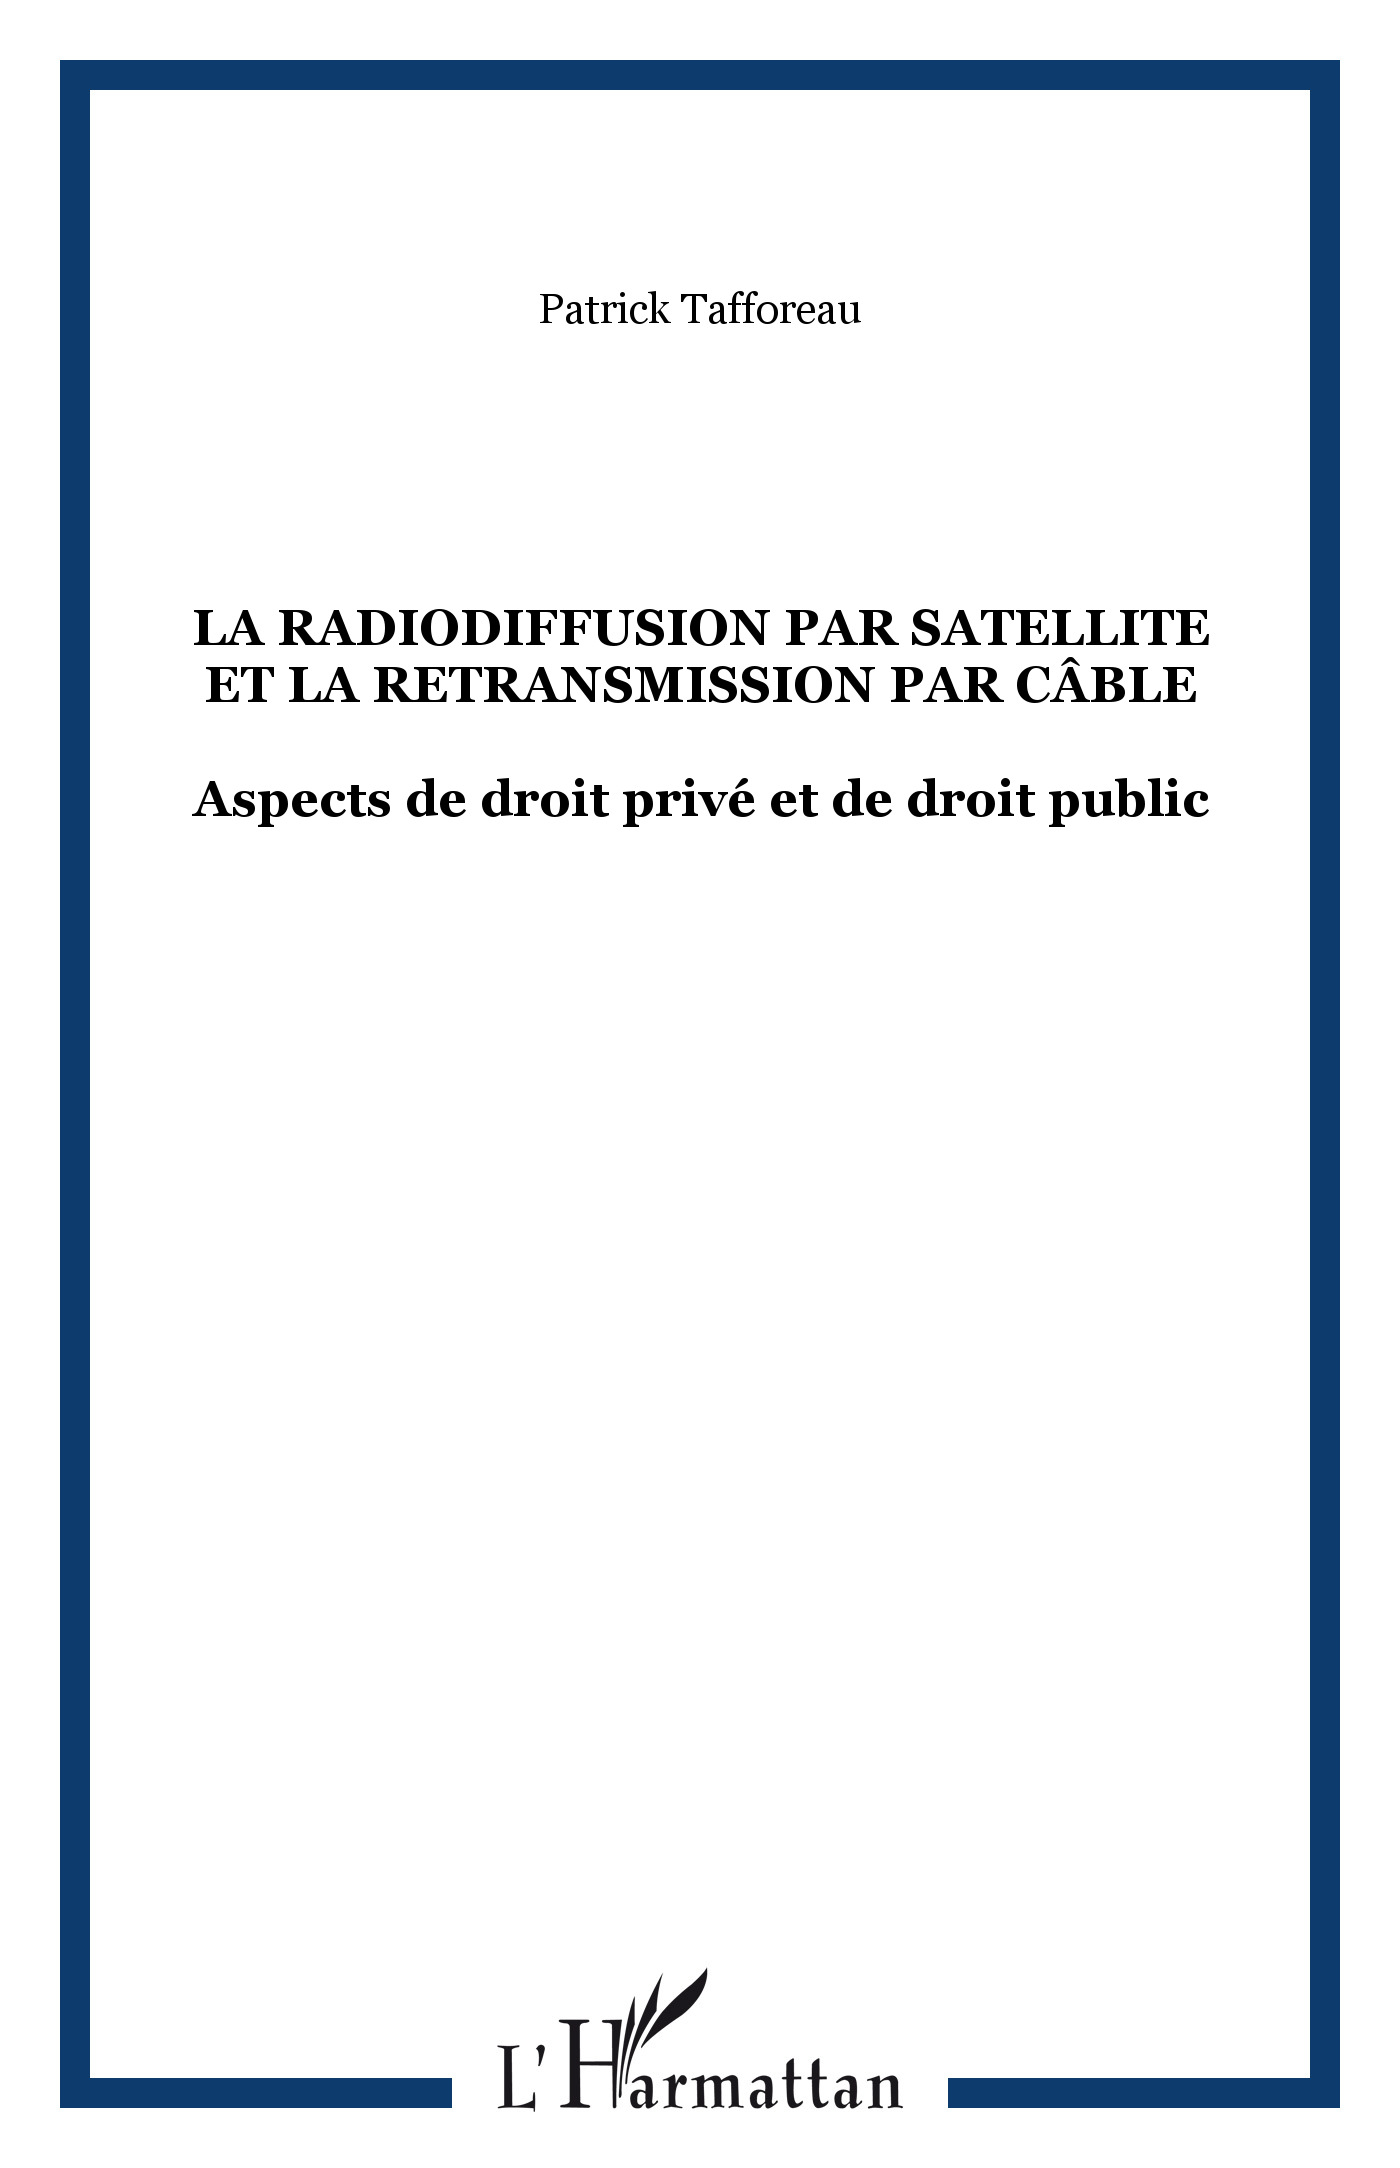 LA RADIODIFFUSION PAR SATELLITE ET LA RETRANSMISSION PAR CÂBLE